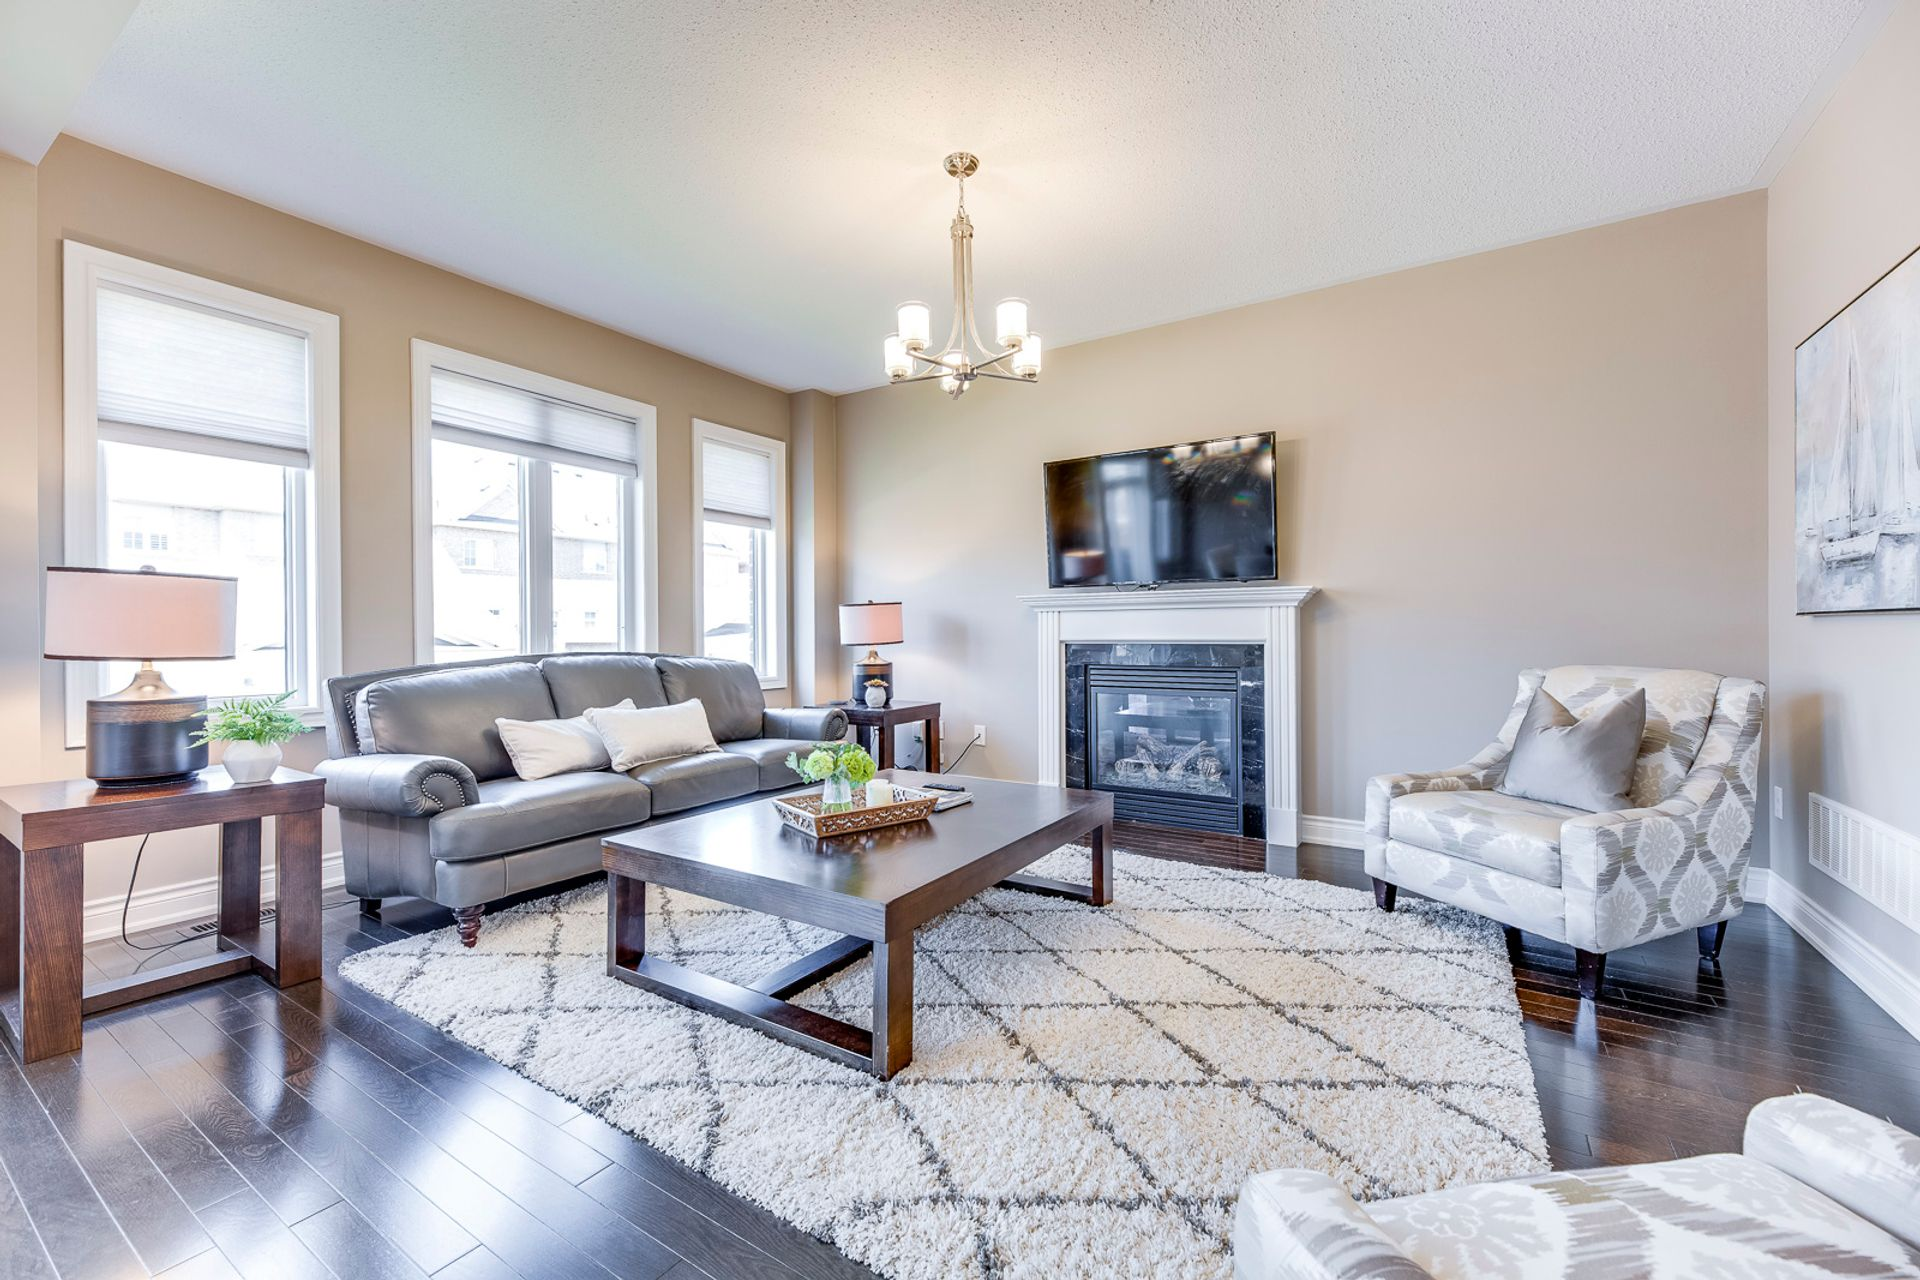 mls-16 at 5480 Meadowcrest Avenue, Churchill Meadows, Mississauga